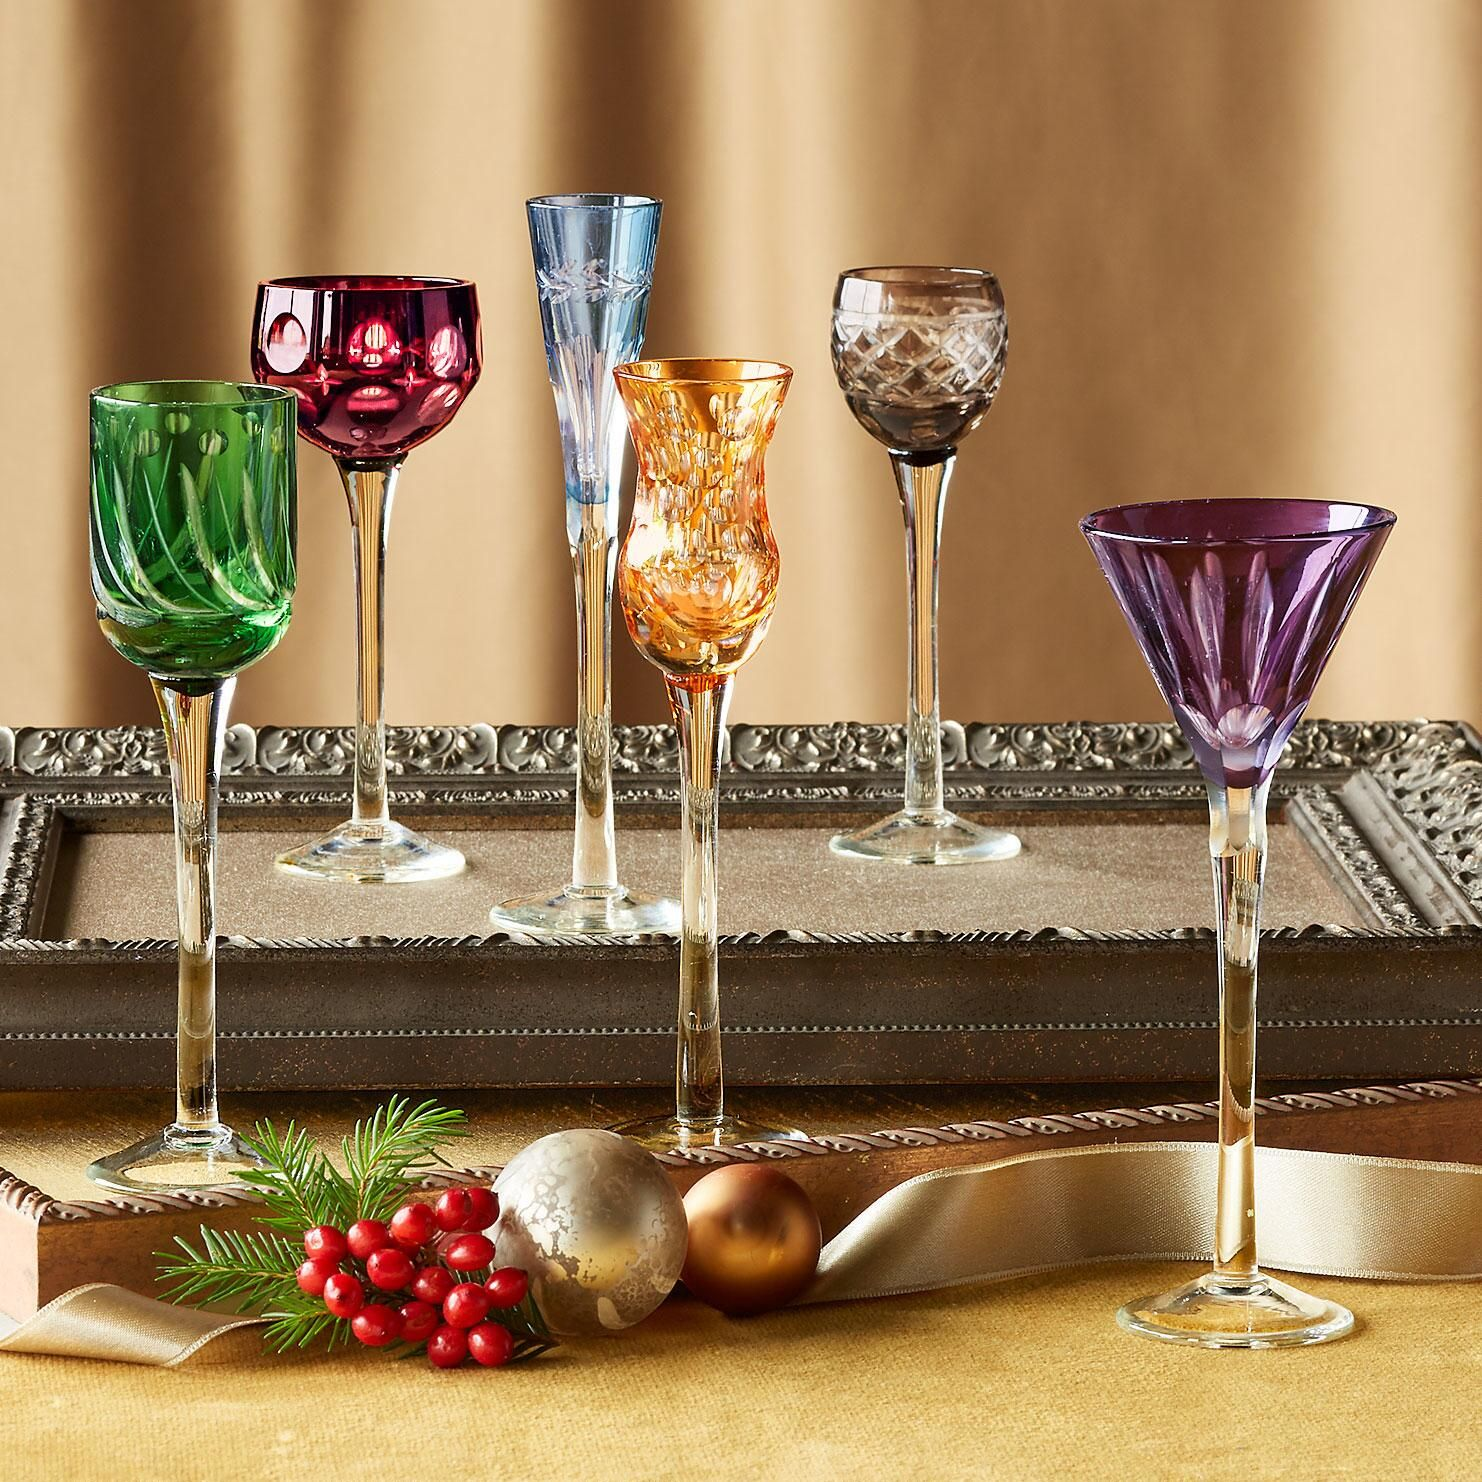 """PETITE FLUTES FOR A FêTE--Slender stems, each a different shape and color. Mouth-blown glass is dipped in color, then hand etched in individual patterns. Imported. Set of 6. 5-1/4"""" to 6-1/4""""H."""